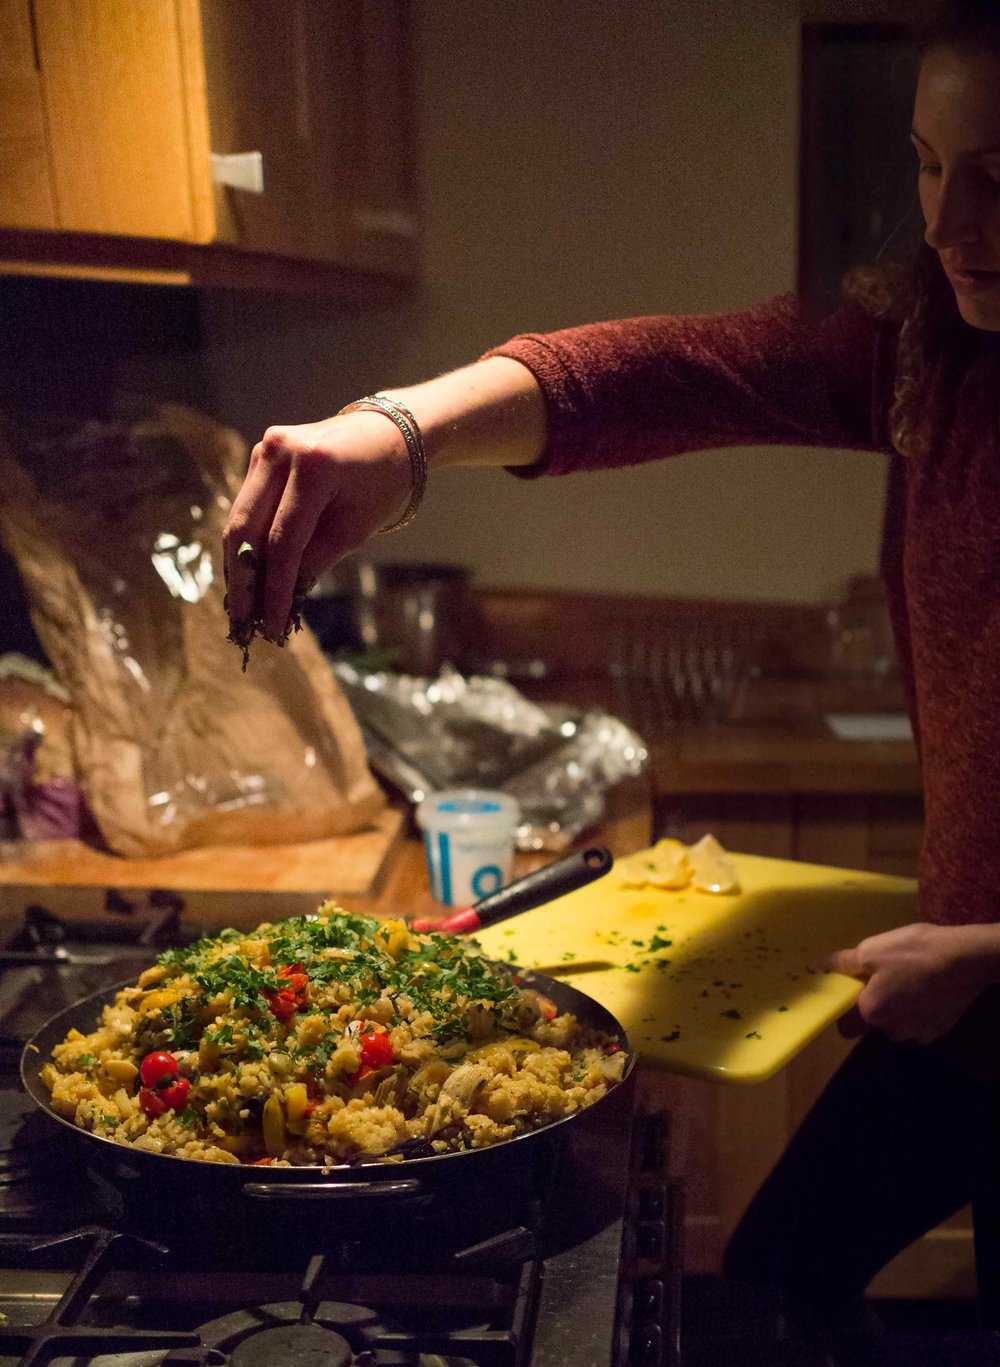 Dinner is served. My friend Svenja producing this amazing pepper & broad bean paella.